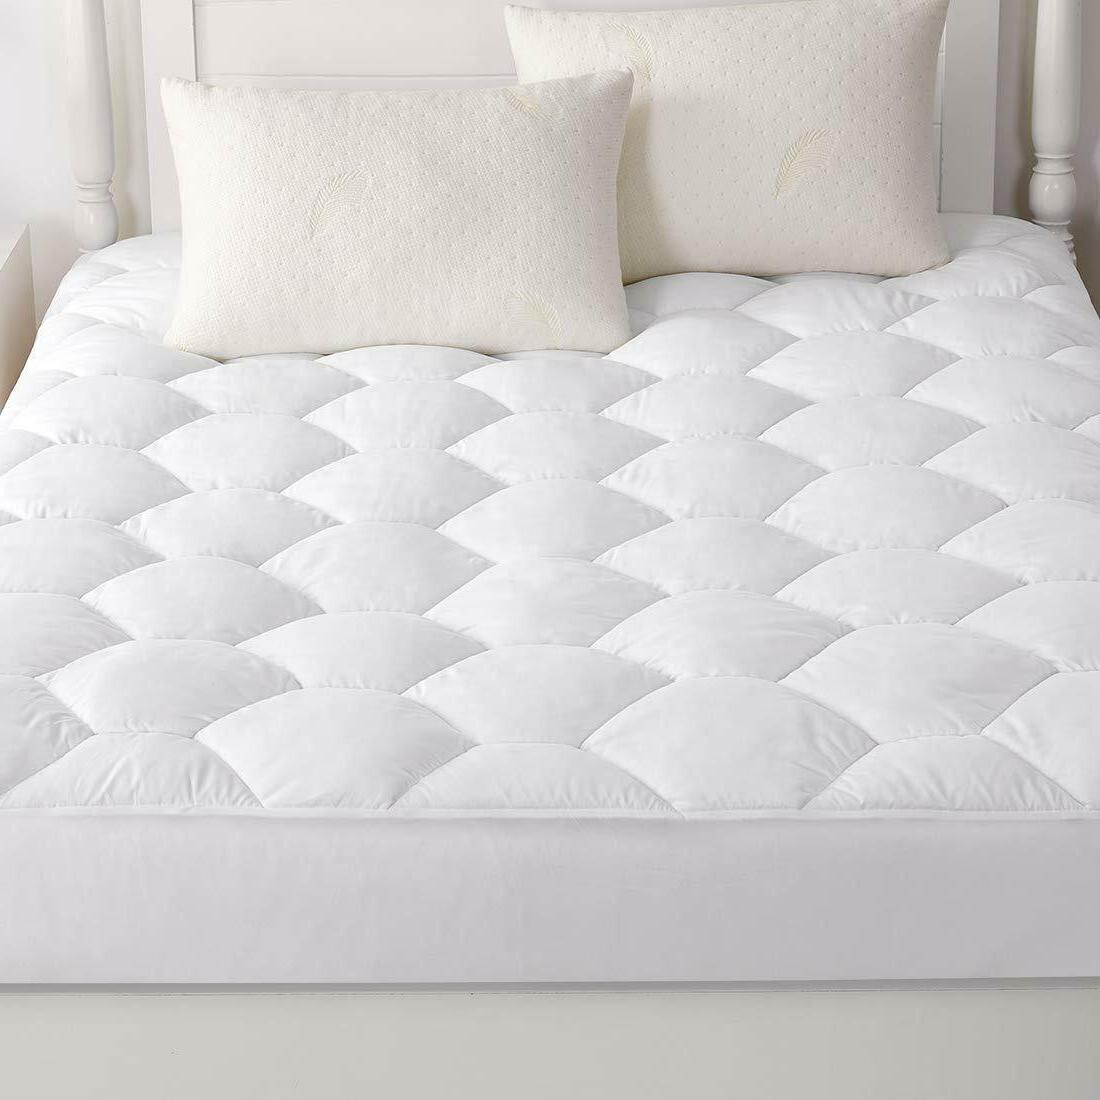 Quilted Queen Mattress Cover Full Twin